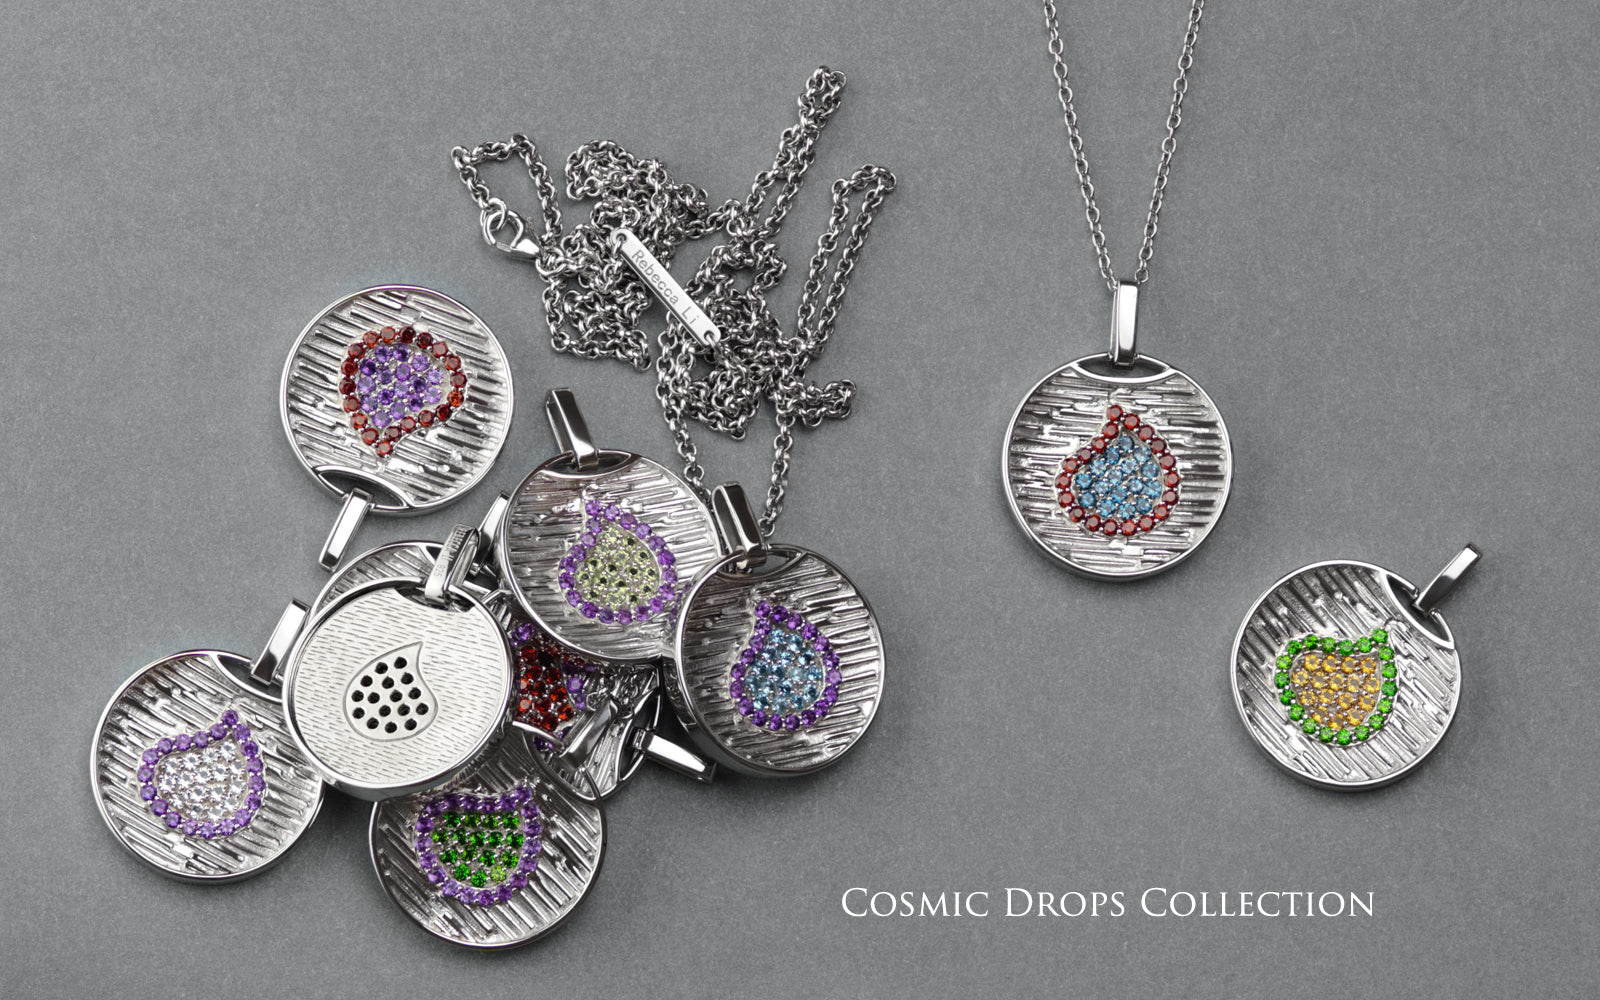 Rebecca Li Cosmic Drops Collection